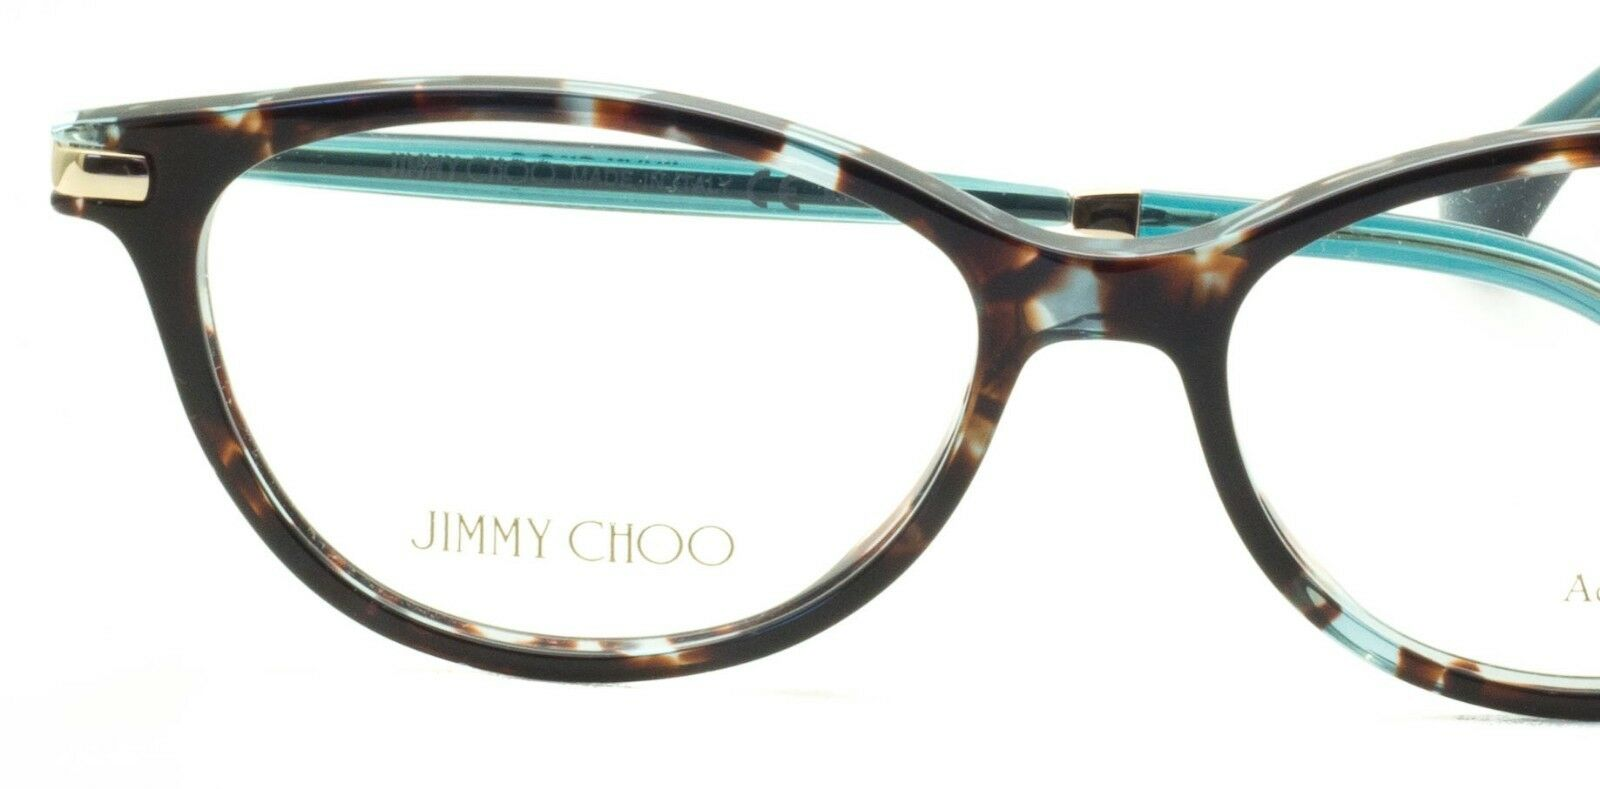 401bc7c2530d Jimmy Choo 153 1m5 Eyewear Glasses RX Optical Glasses Frames Italy -  Trusted for sale online